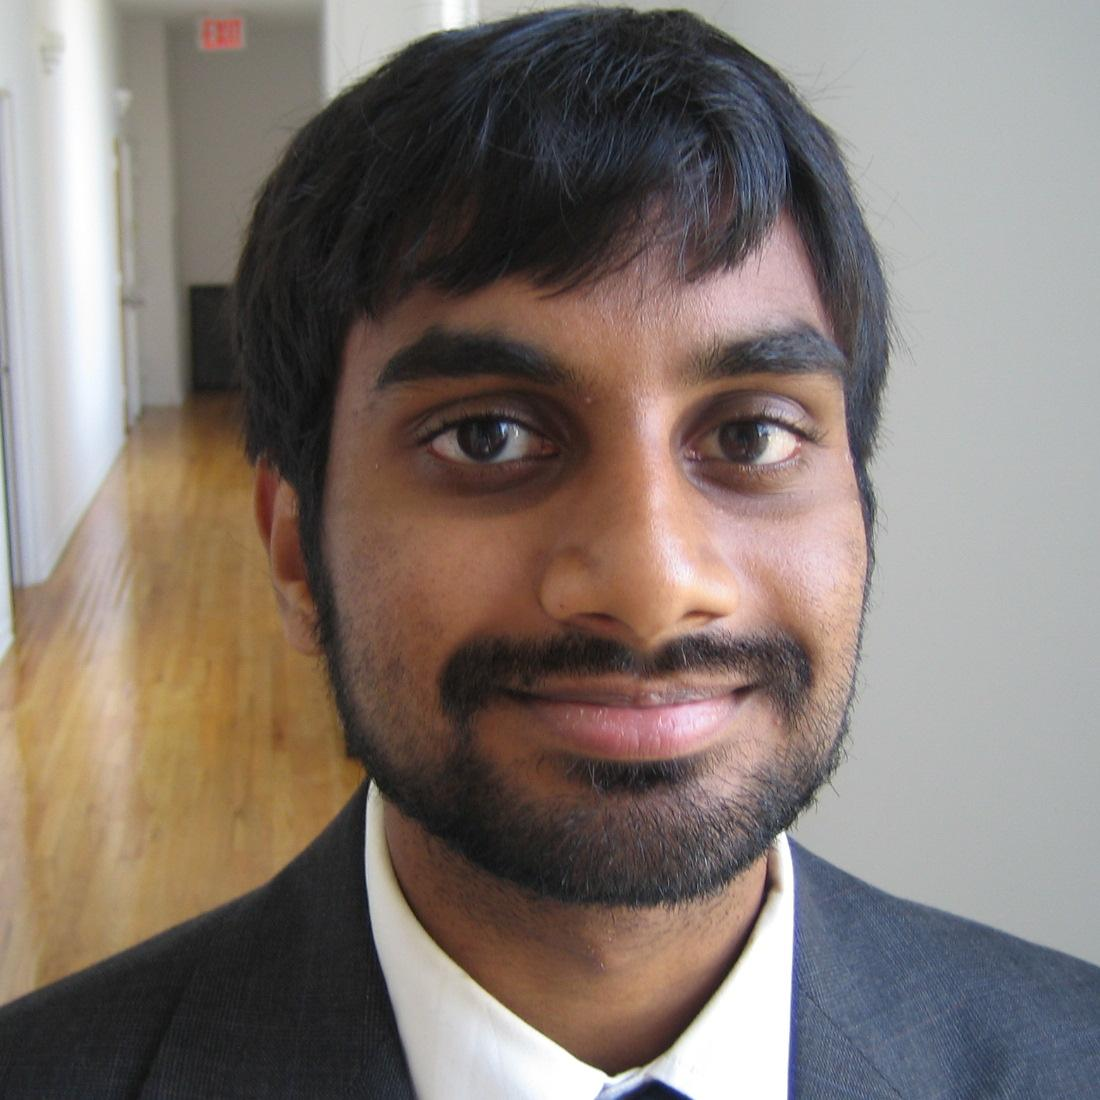 Aziz ansari net worth 2018 height age bio and facts aziz ansari bio net worth facts stopboris Choice Image